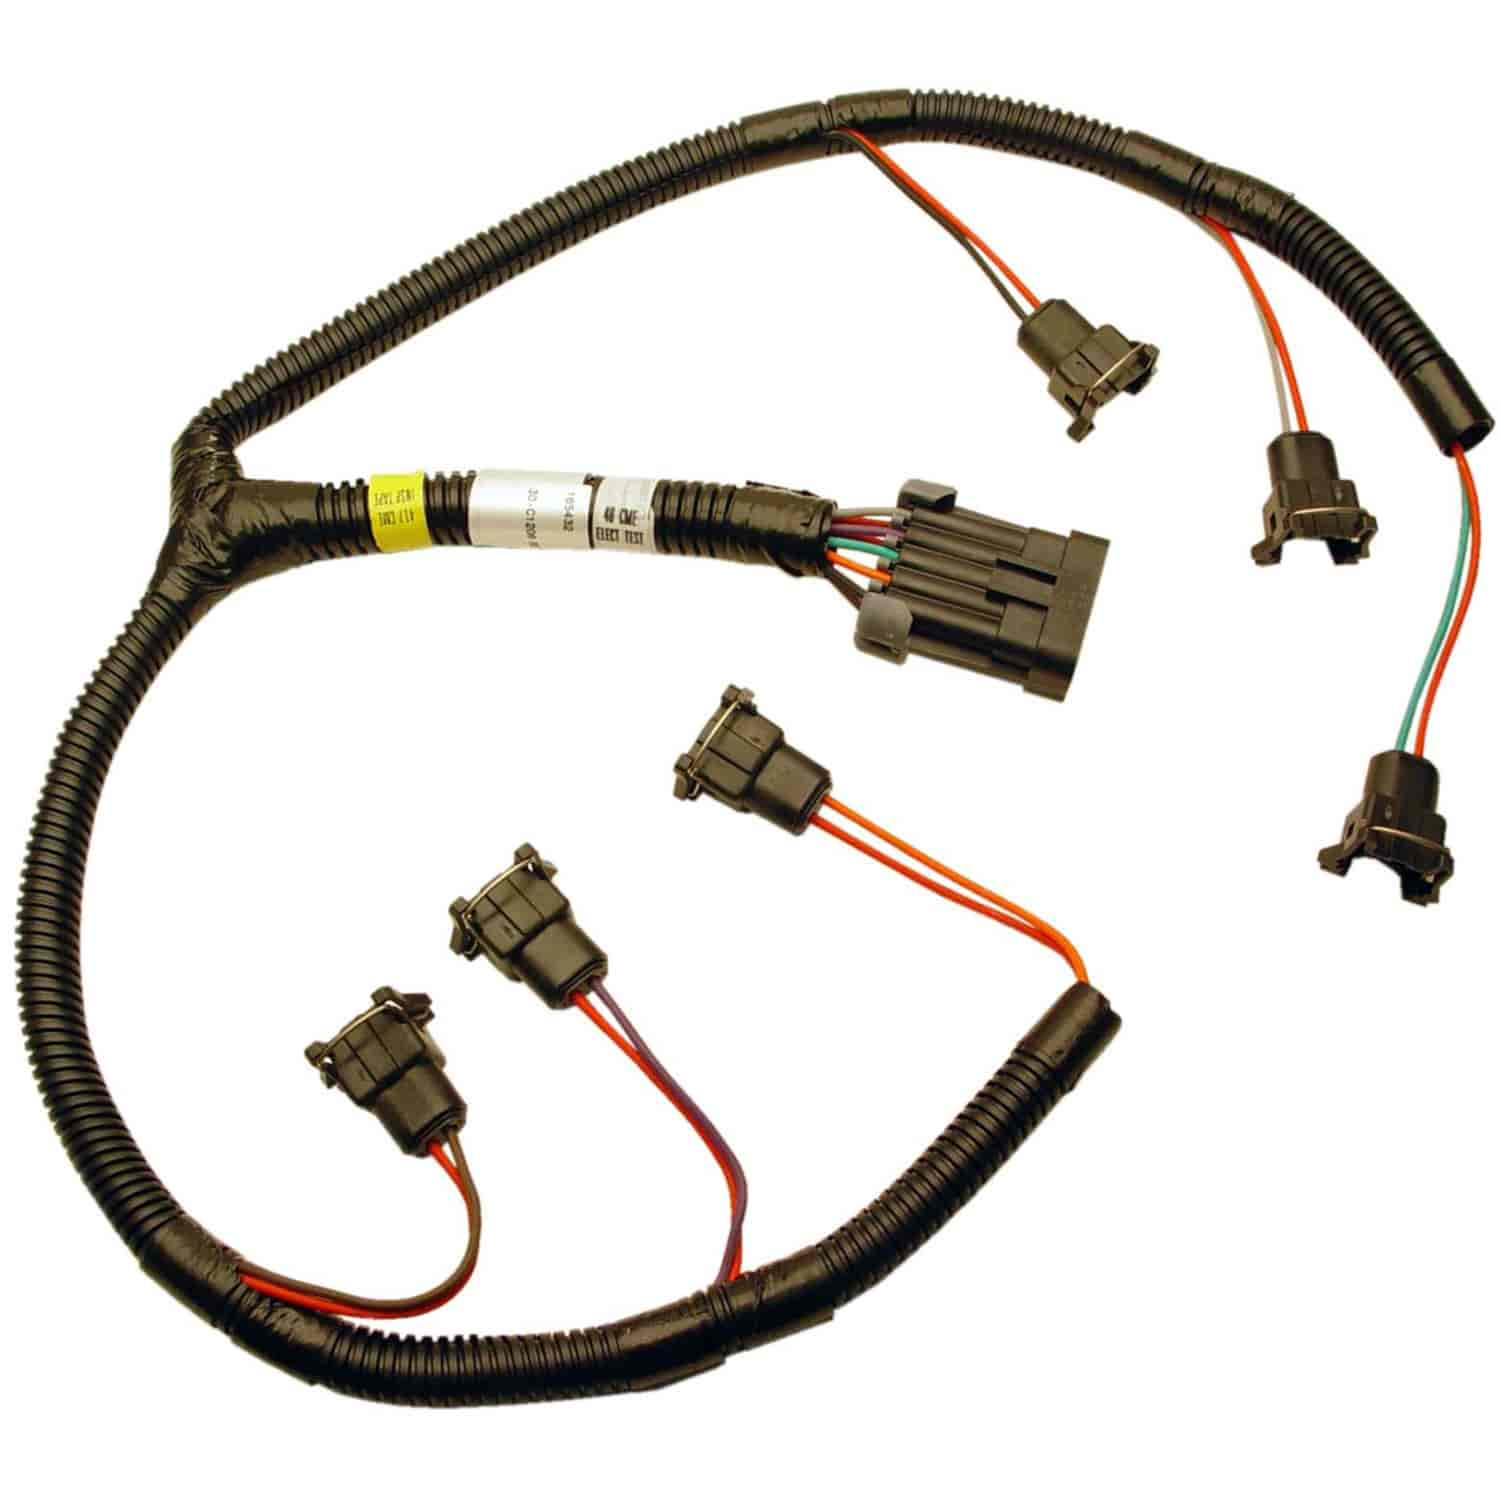 Fast 301206 Xfi Fuel Injector Harness Buick V6 Jegs Wiring